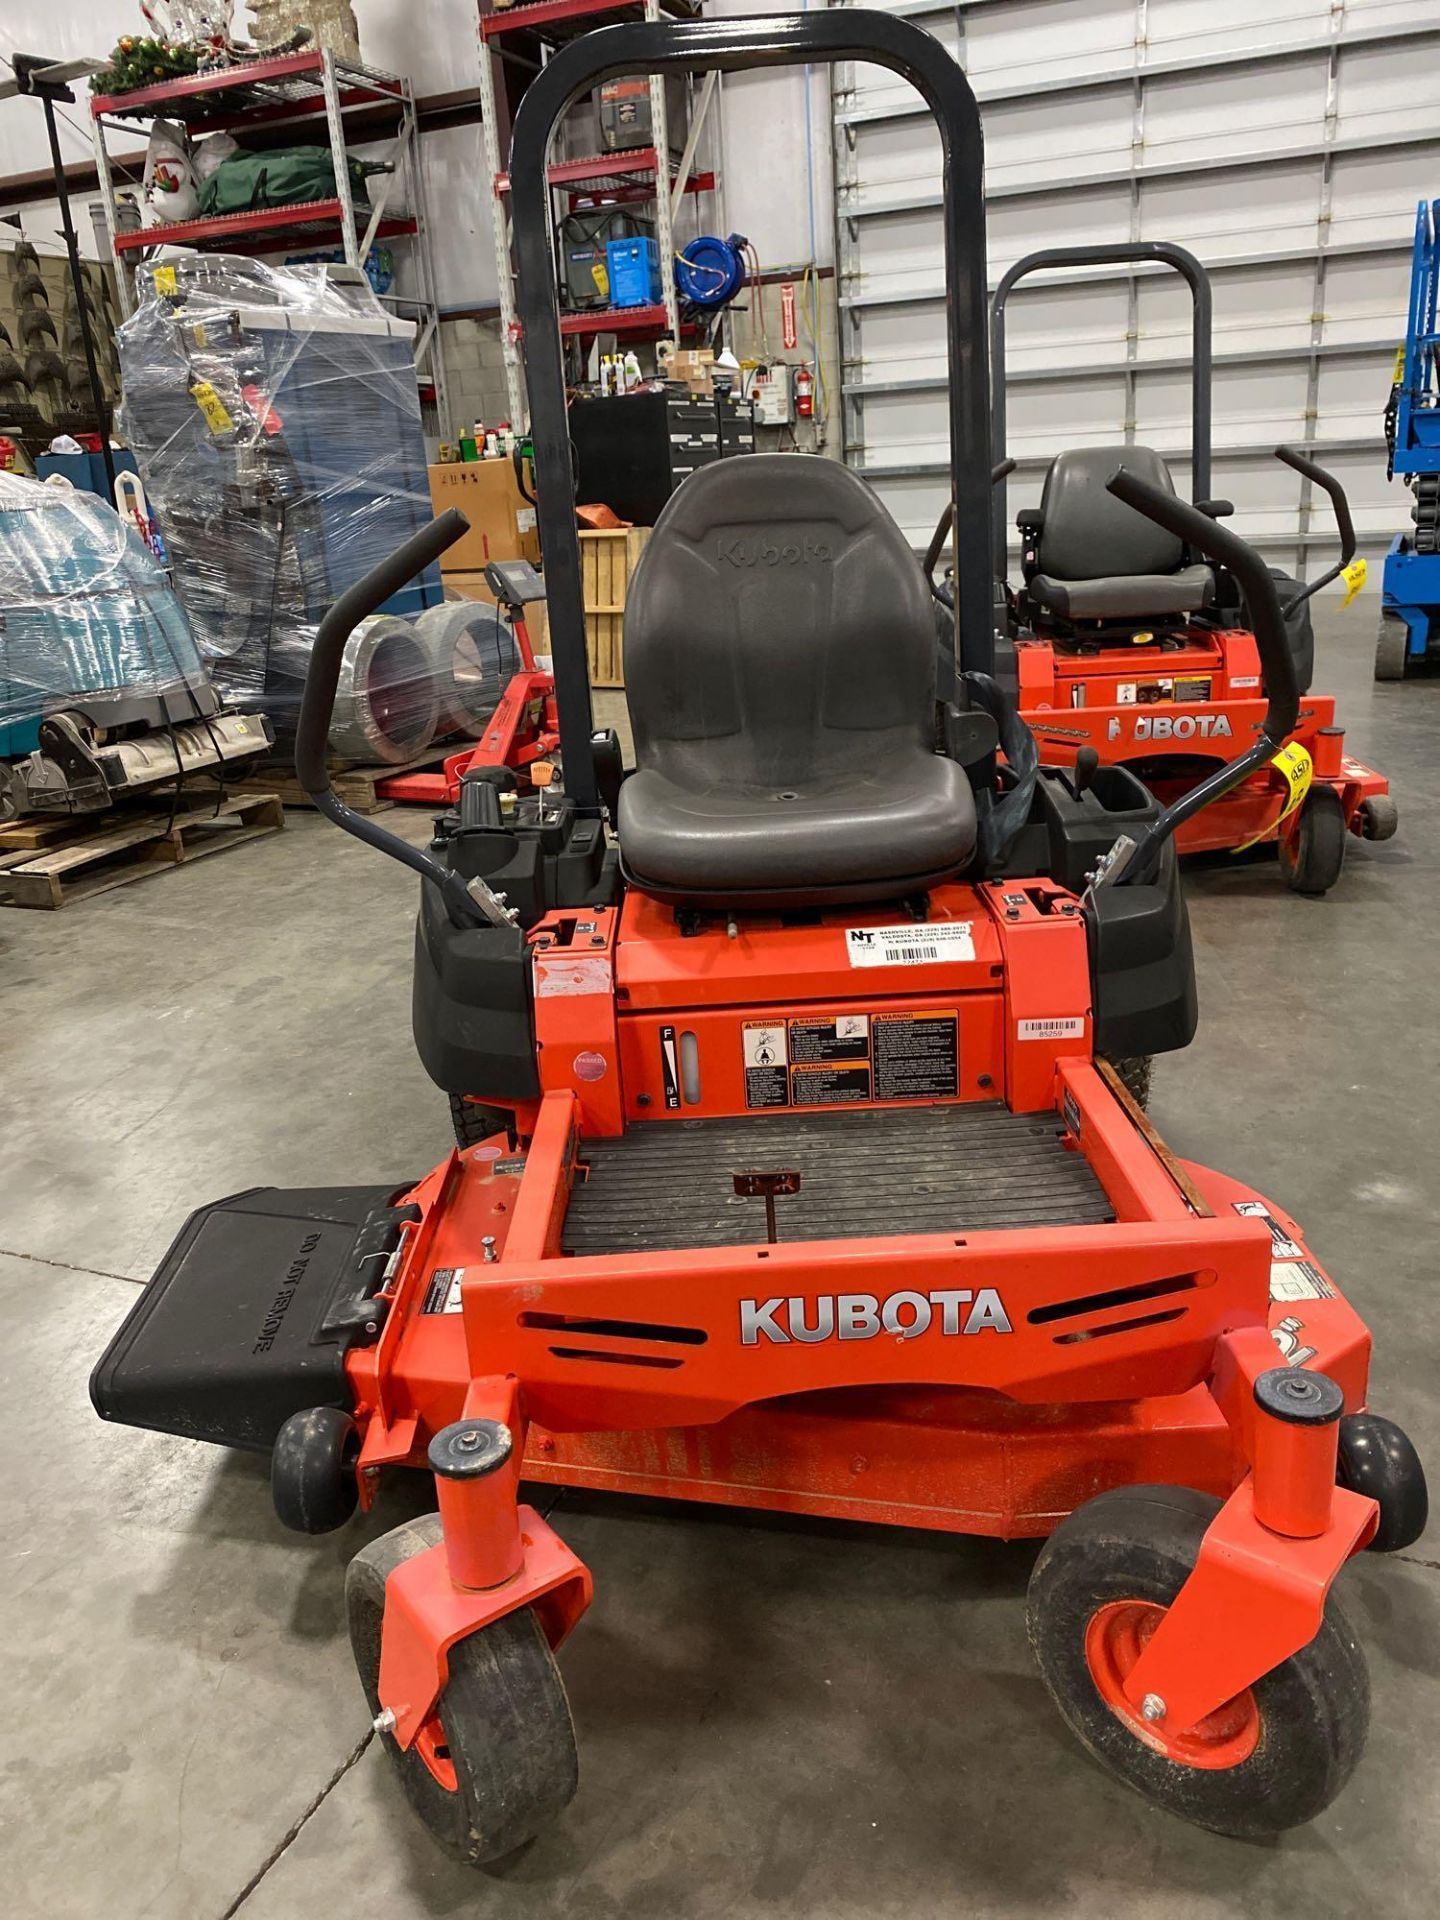 """Lot 33 - 2016 KUBOTA Z122RKW 42"""" RIDE ON MOWER, 3.9 HOURS SHOWING, RUNS AND OPERATES"""